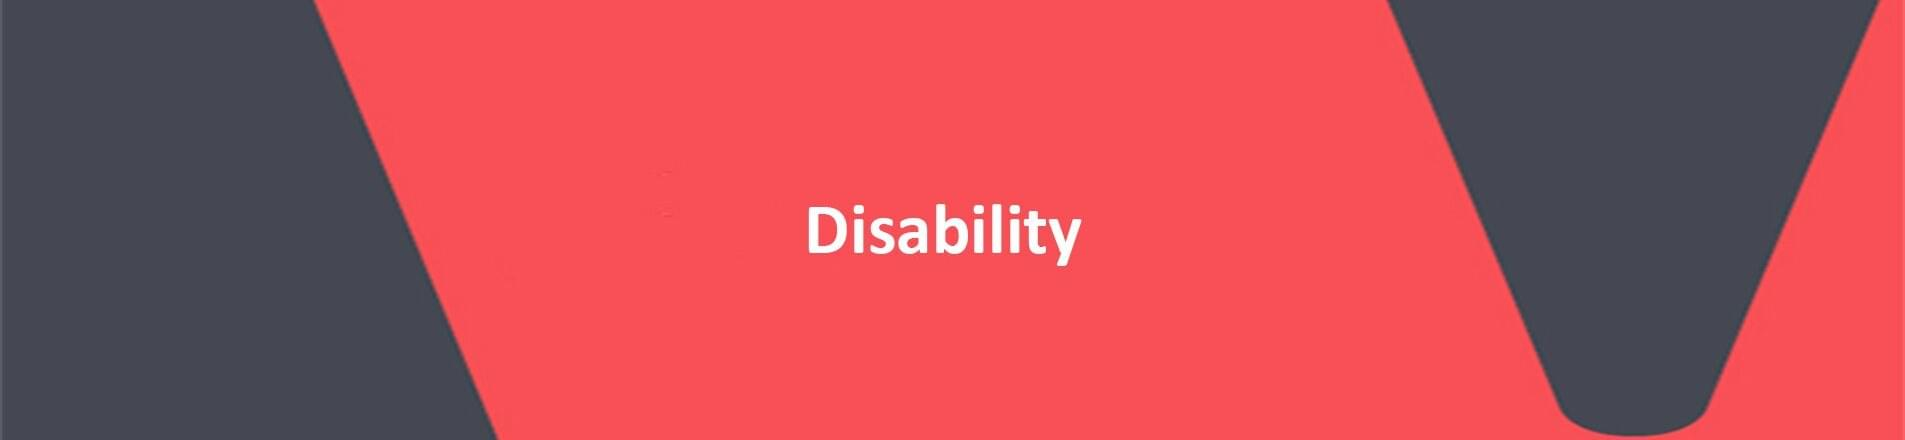 Red background with white text overlaid, spelling Disability.